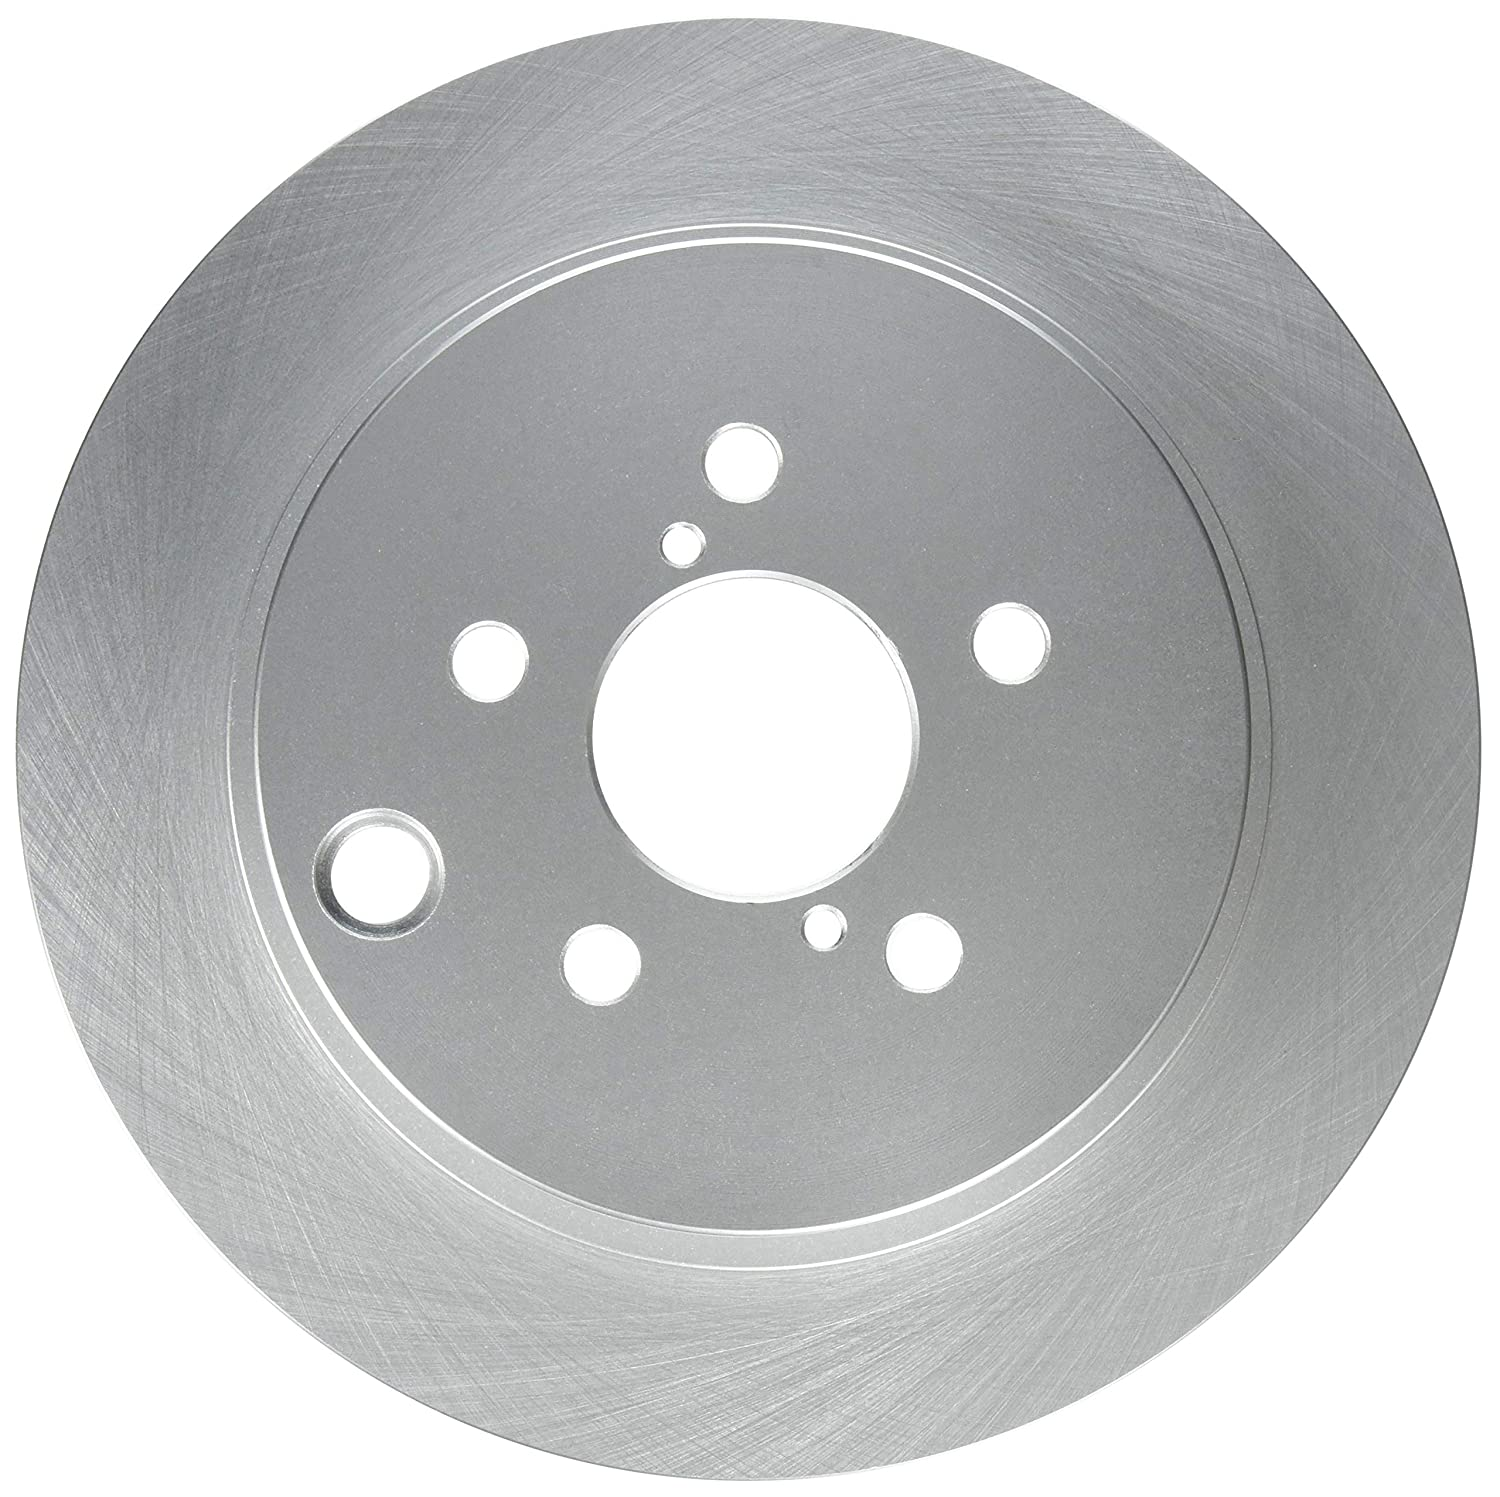 Raybestos 981787FZN Rust Prevention Technology Coated Rotor Brake